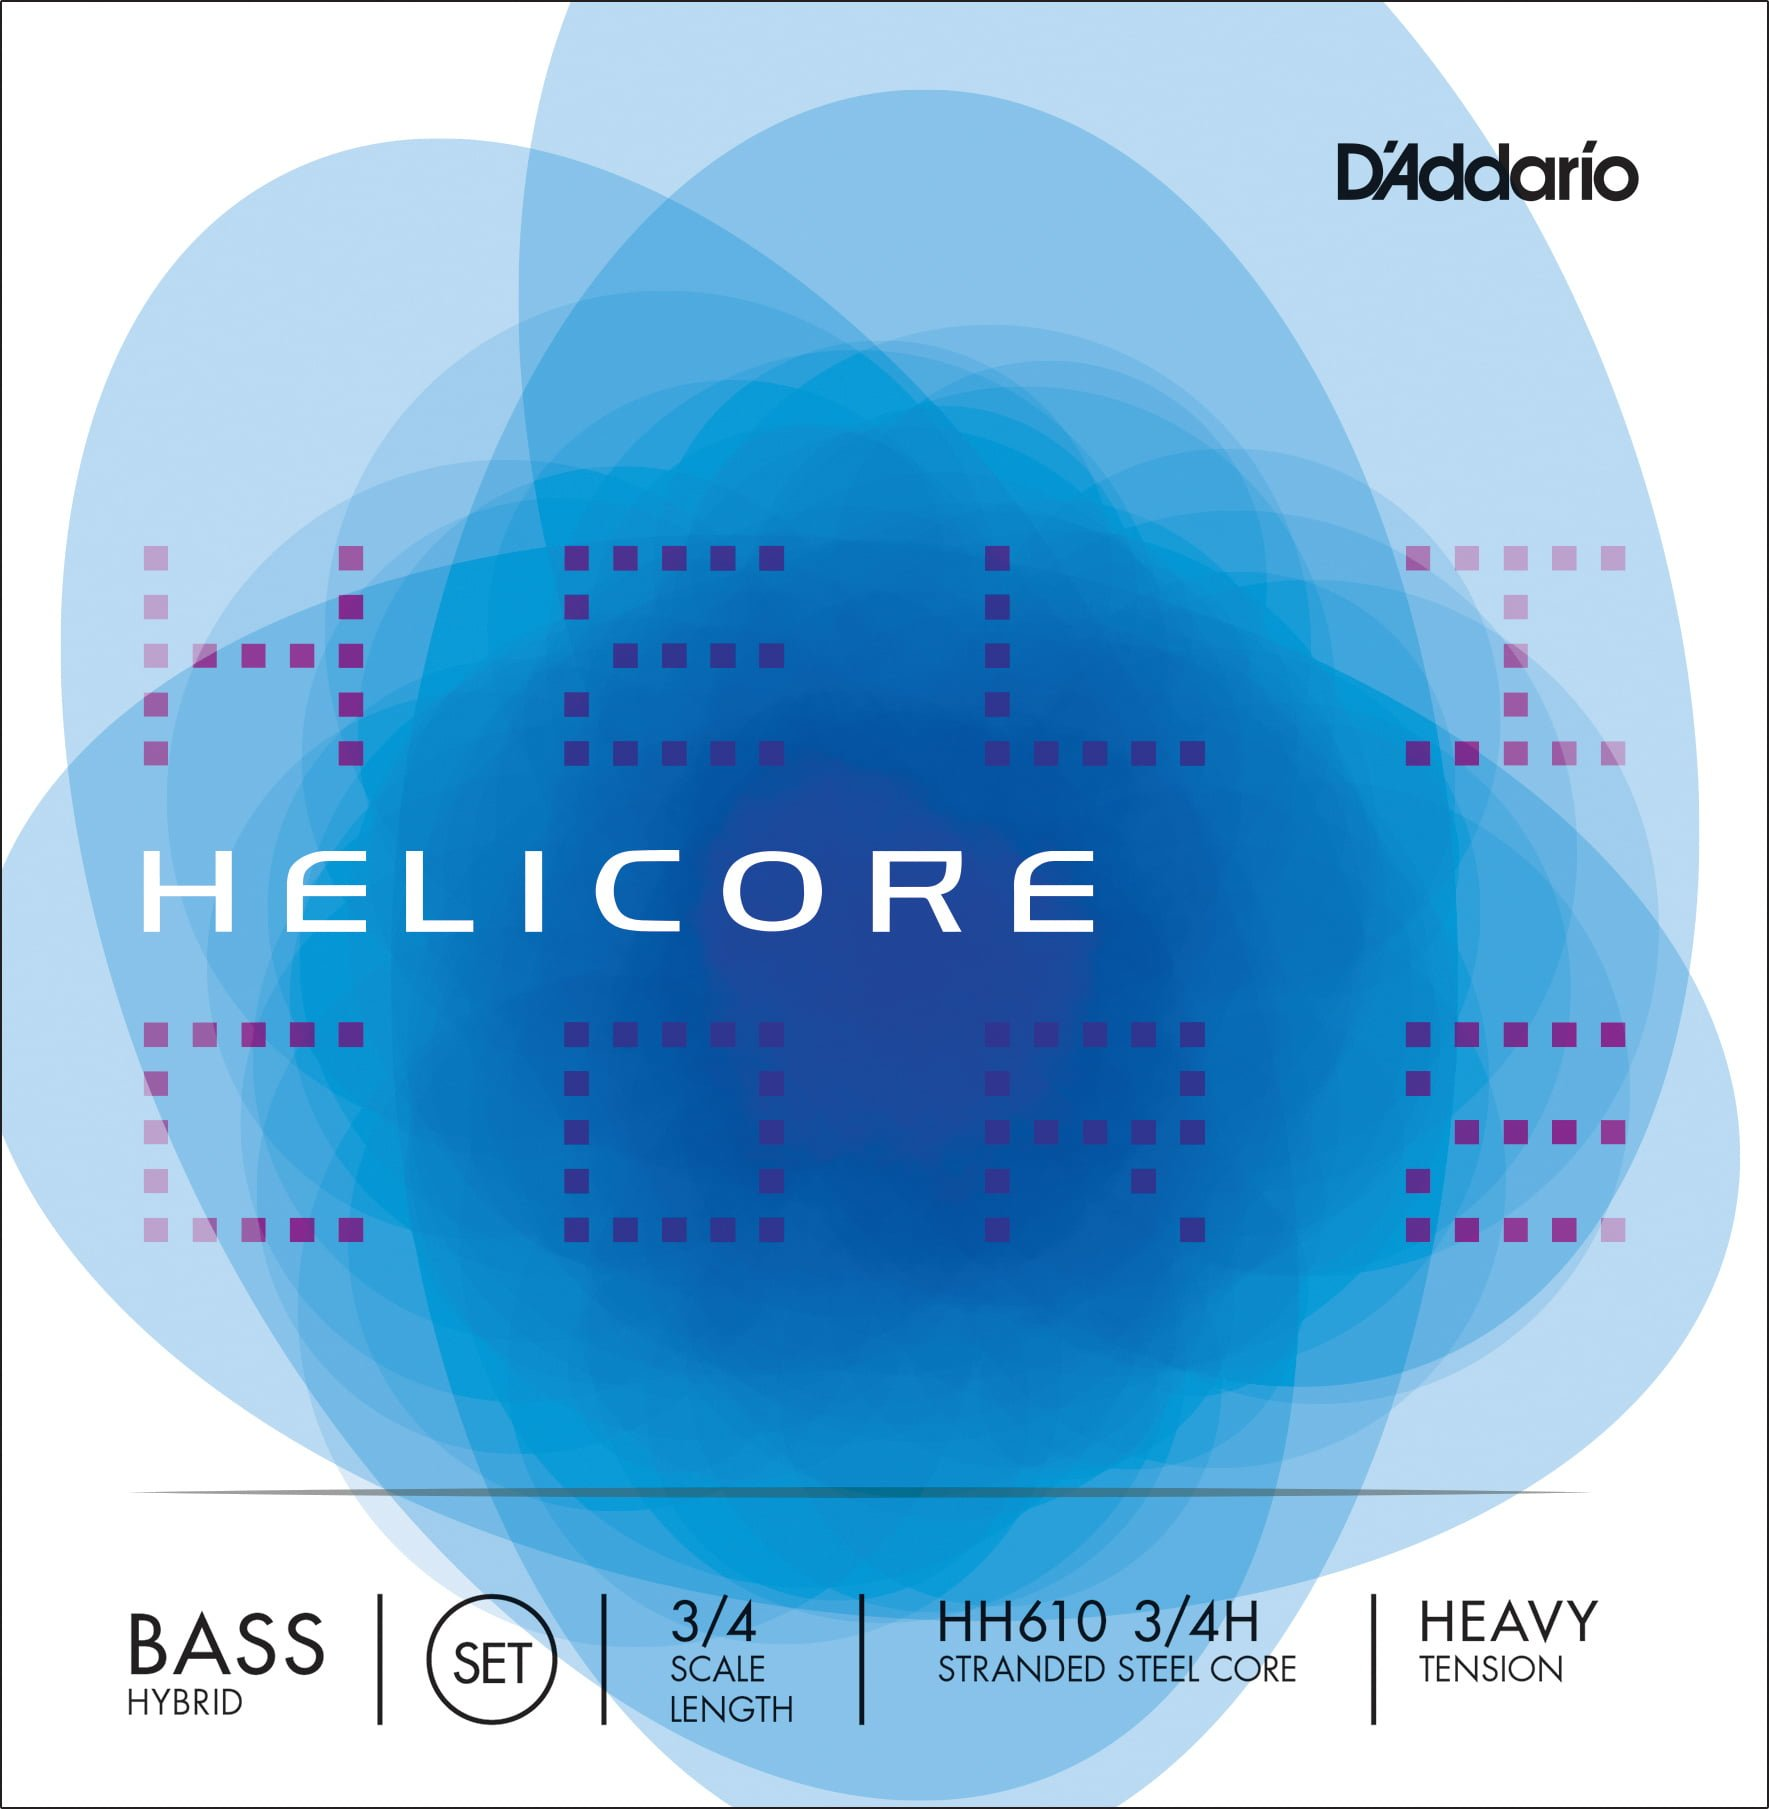 Helicore Hybrid Double Bass Set of Strings 3/4 High